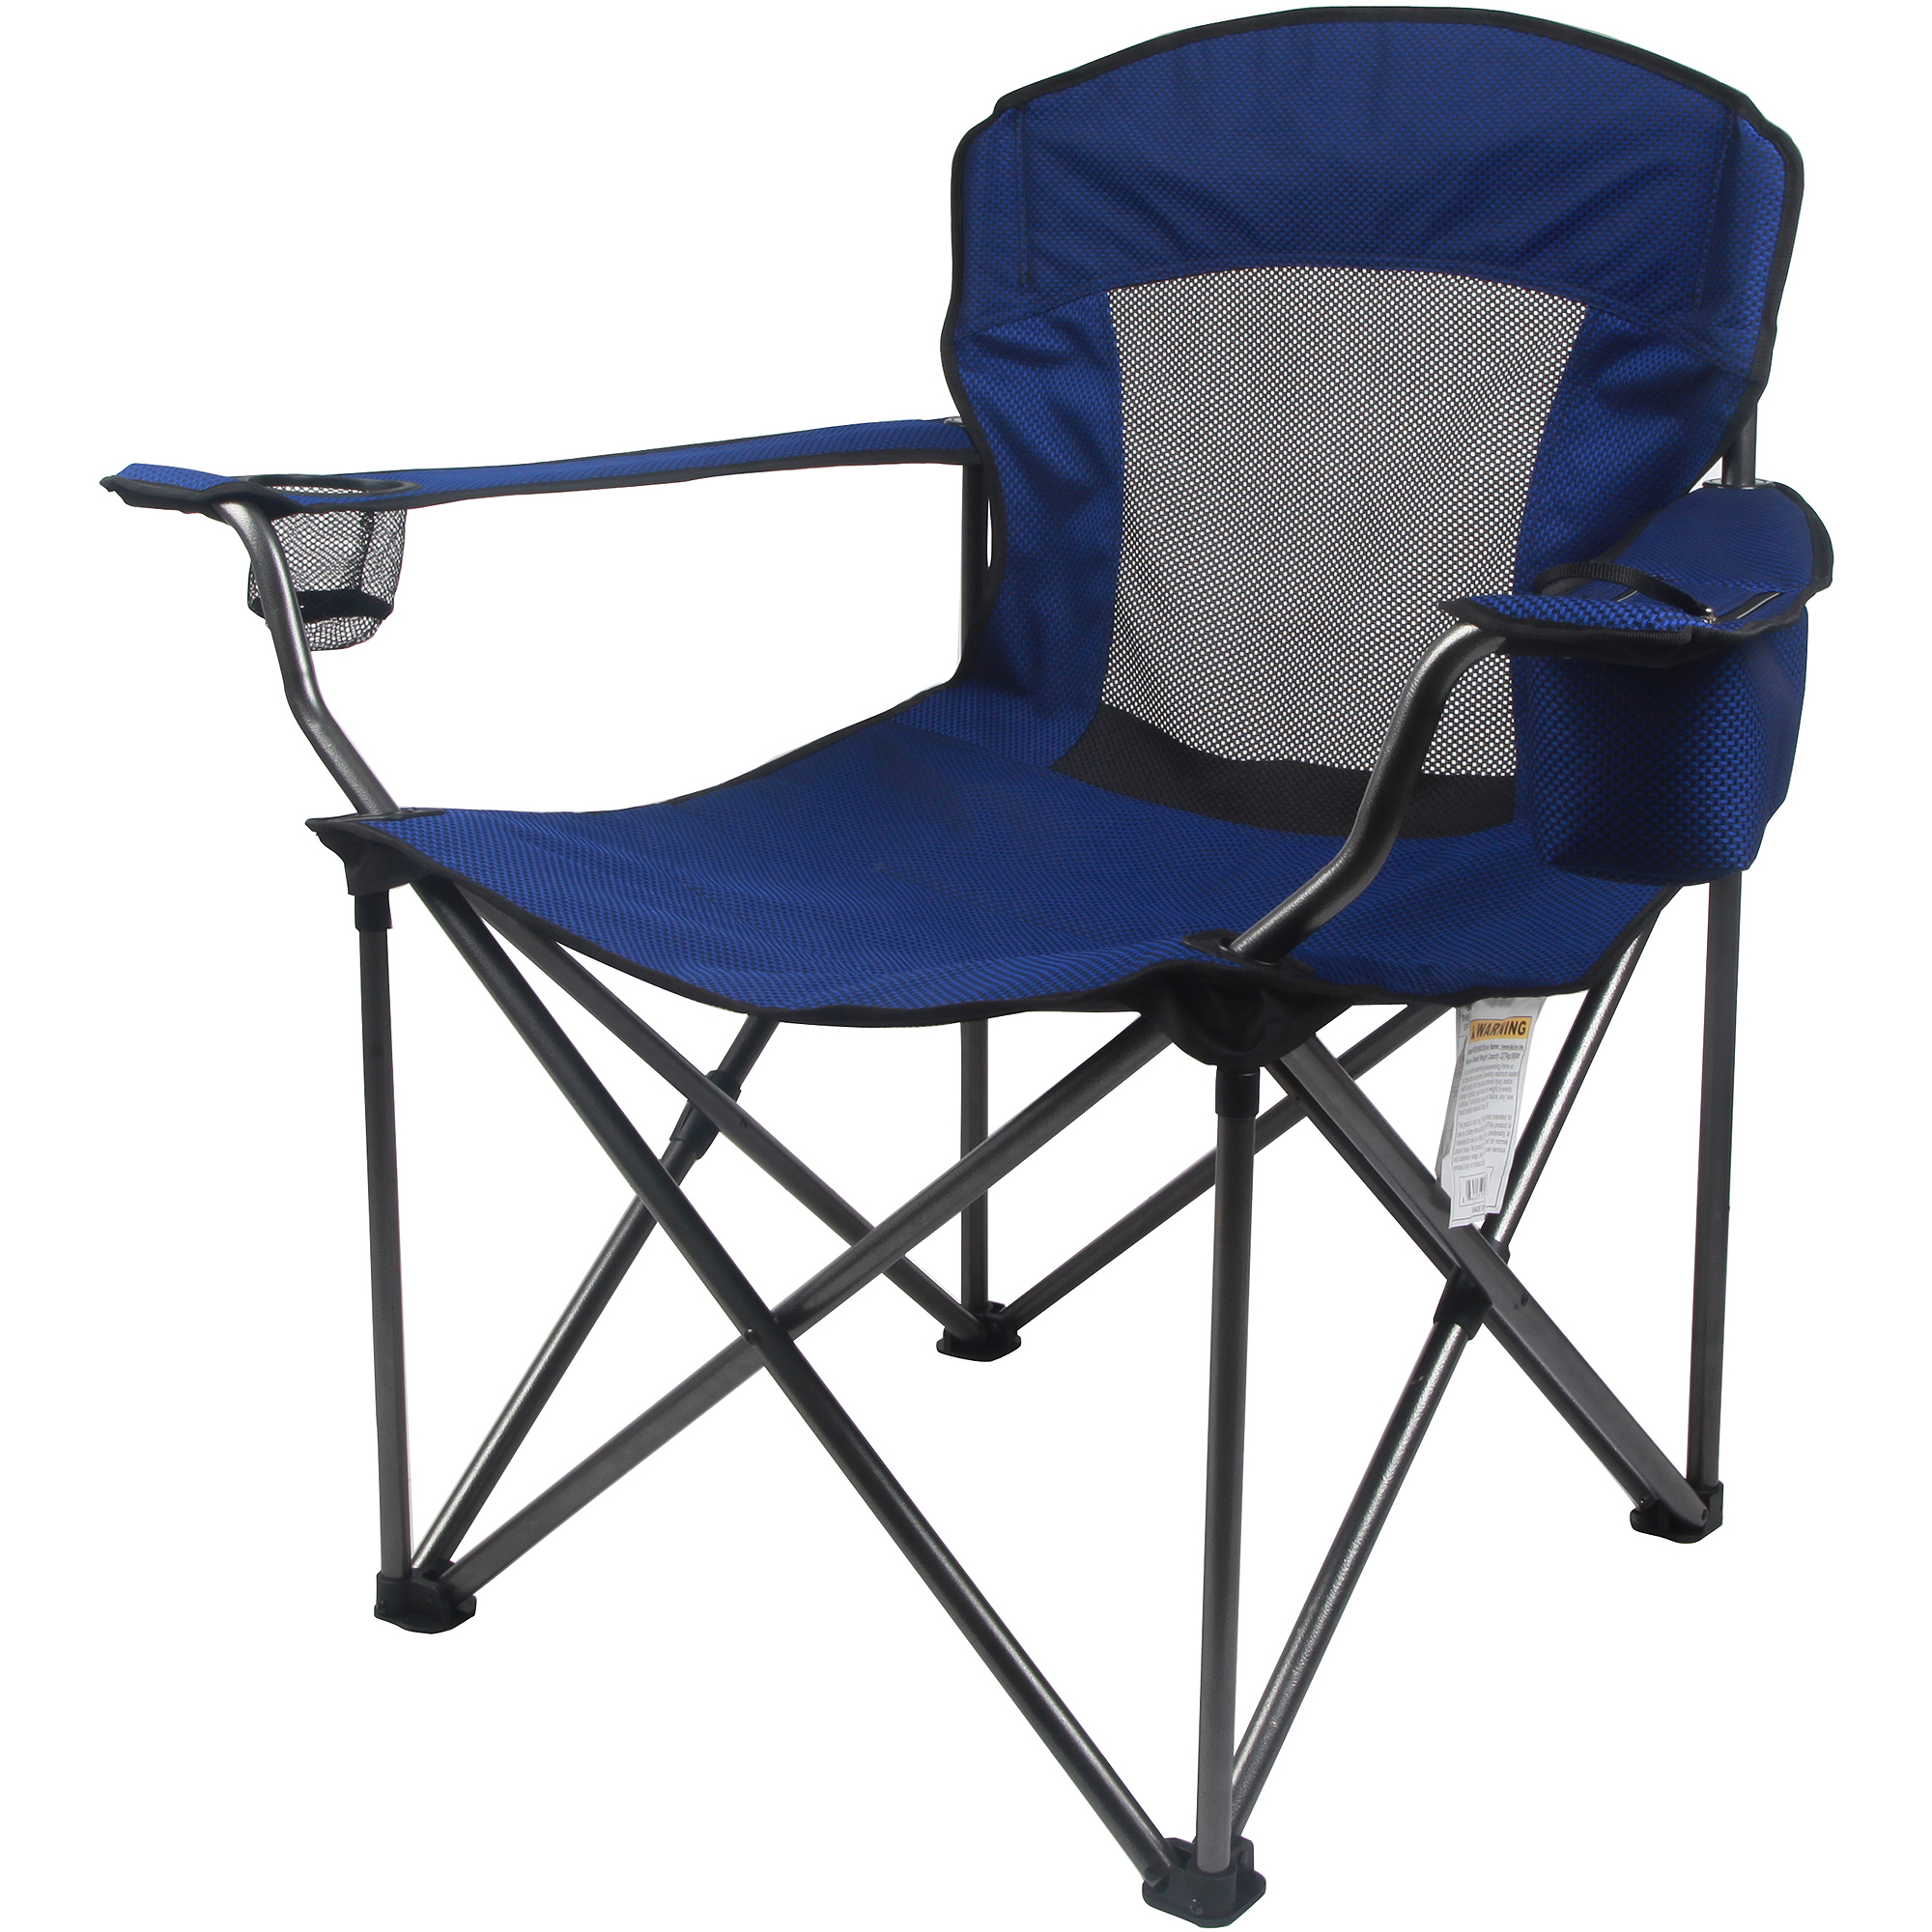 Ozark Trail Deluxe Folding Camping Arm Chair Walmart